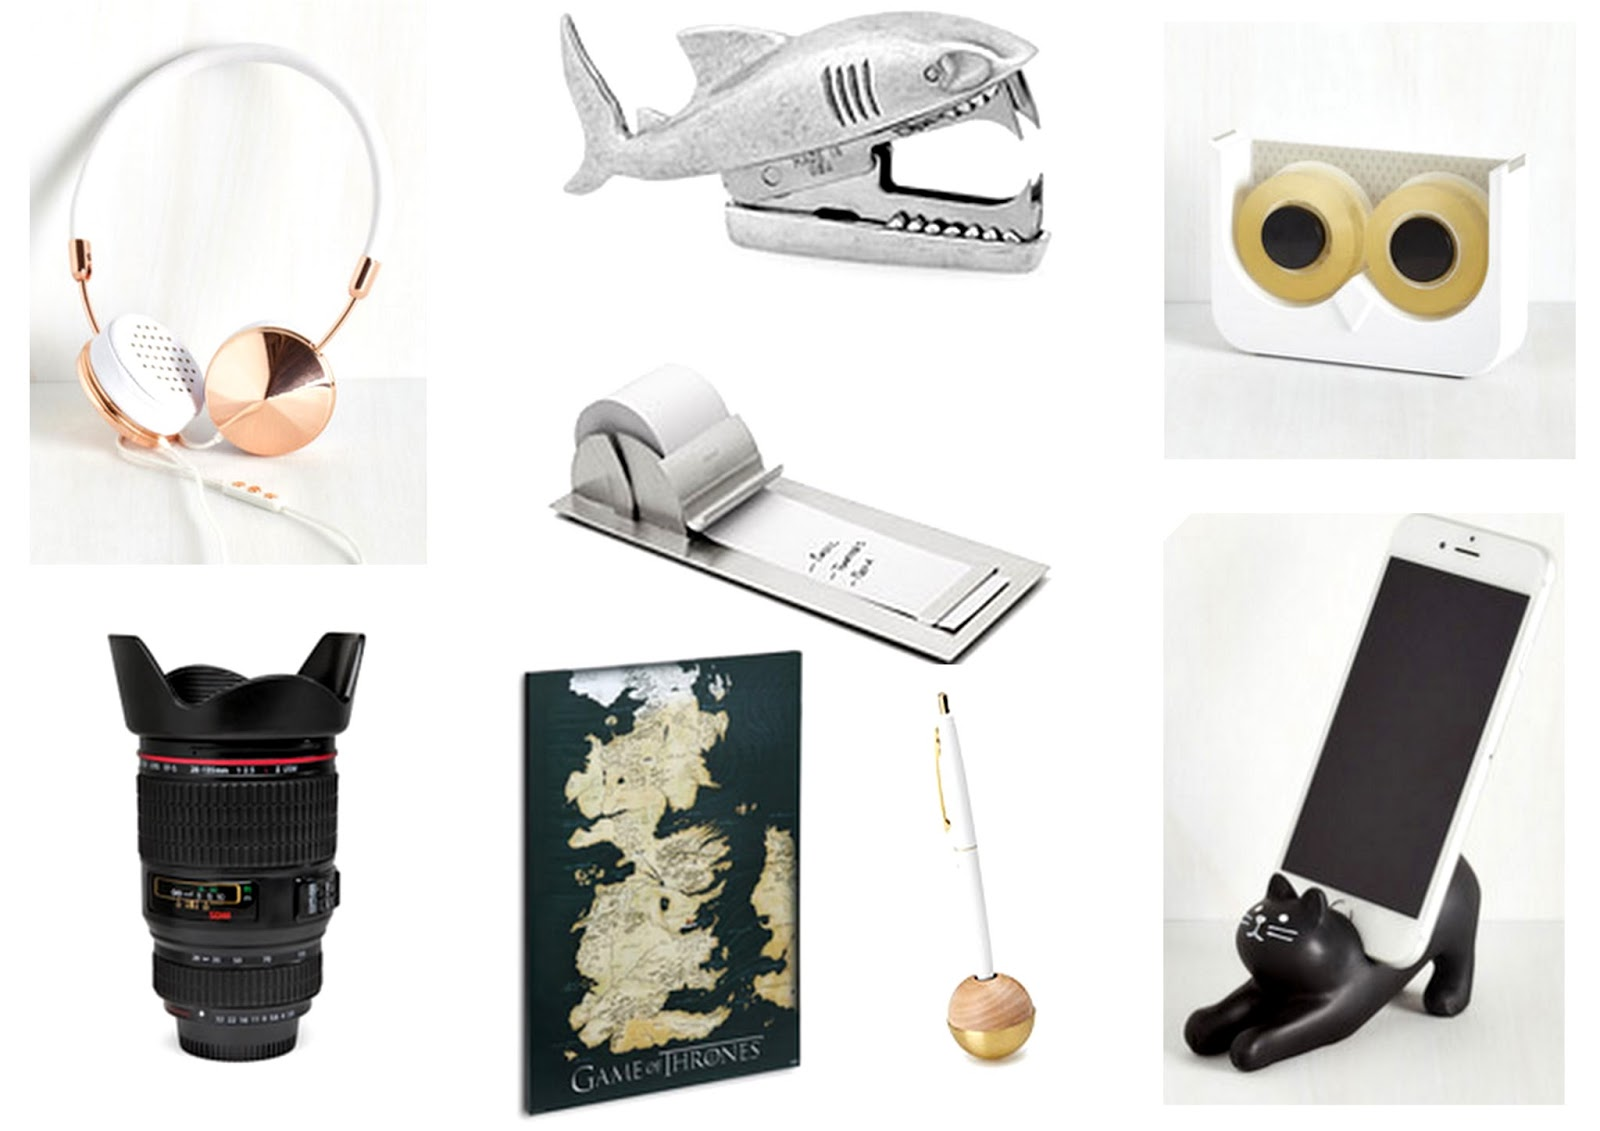 Coolest Gadgets 2015 For Sale Super Cool Office Gadgets And Stationary Fresh Faced Bliss